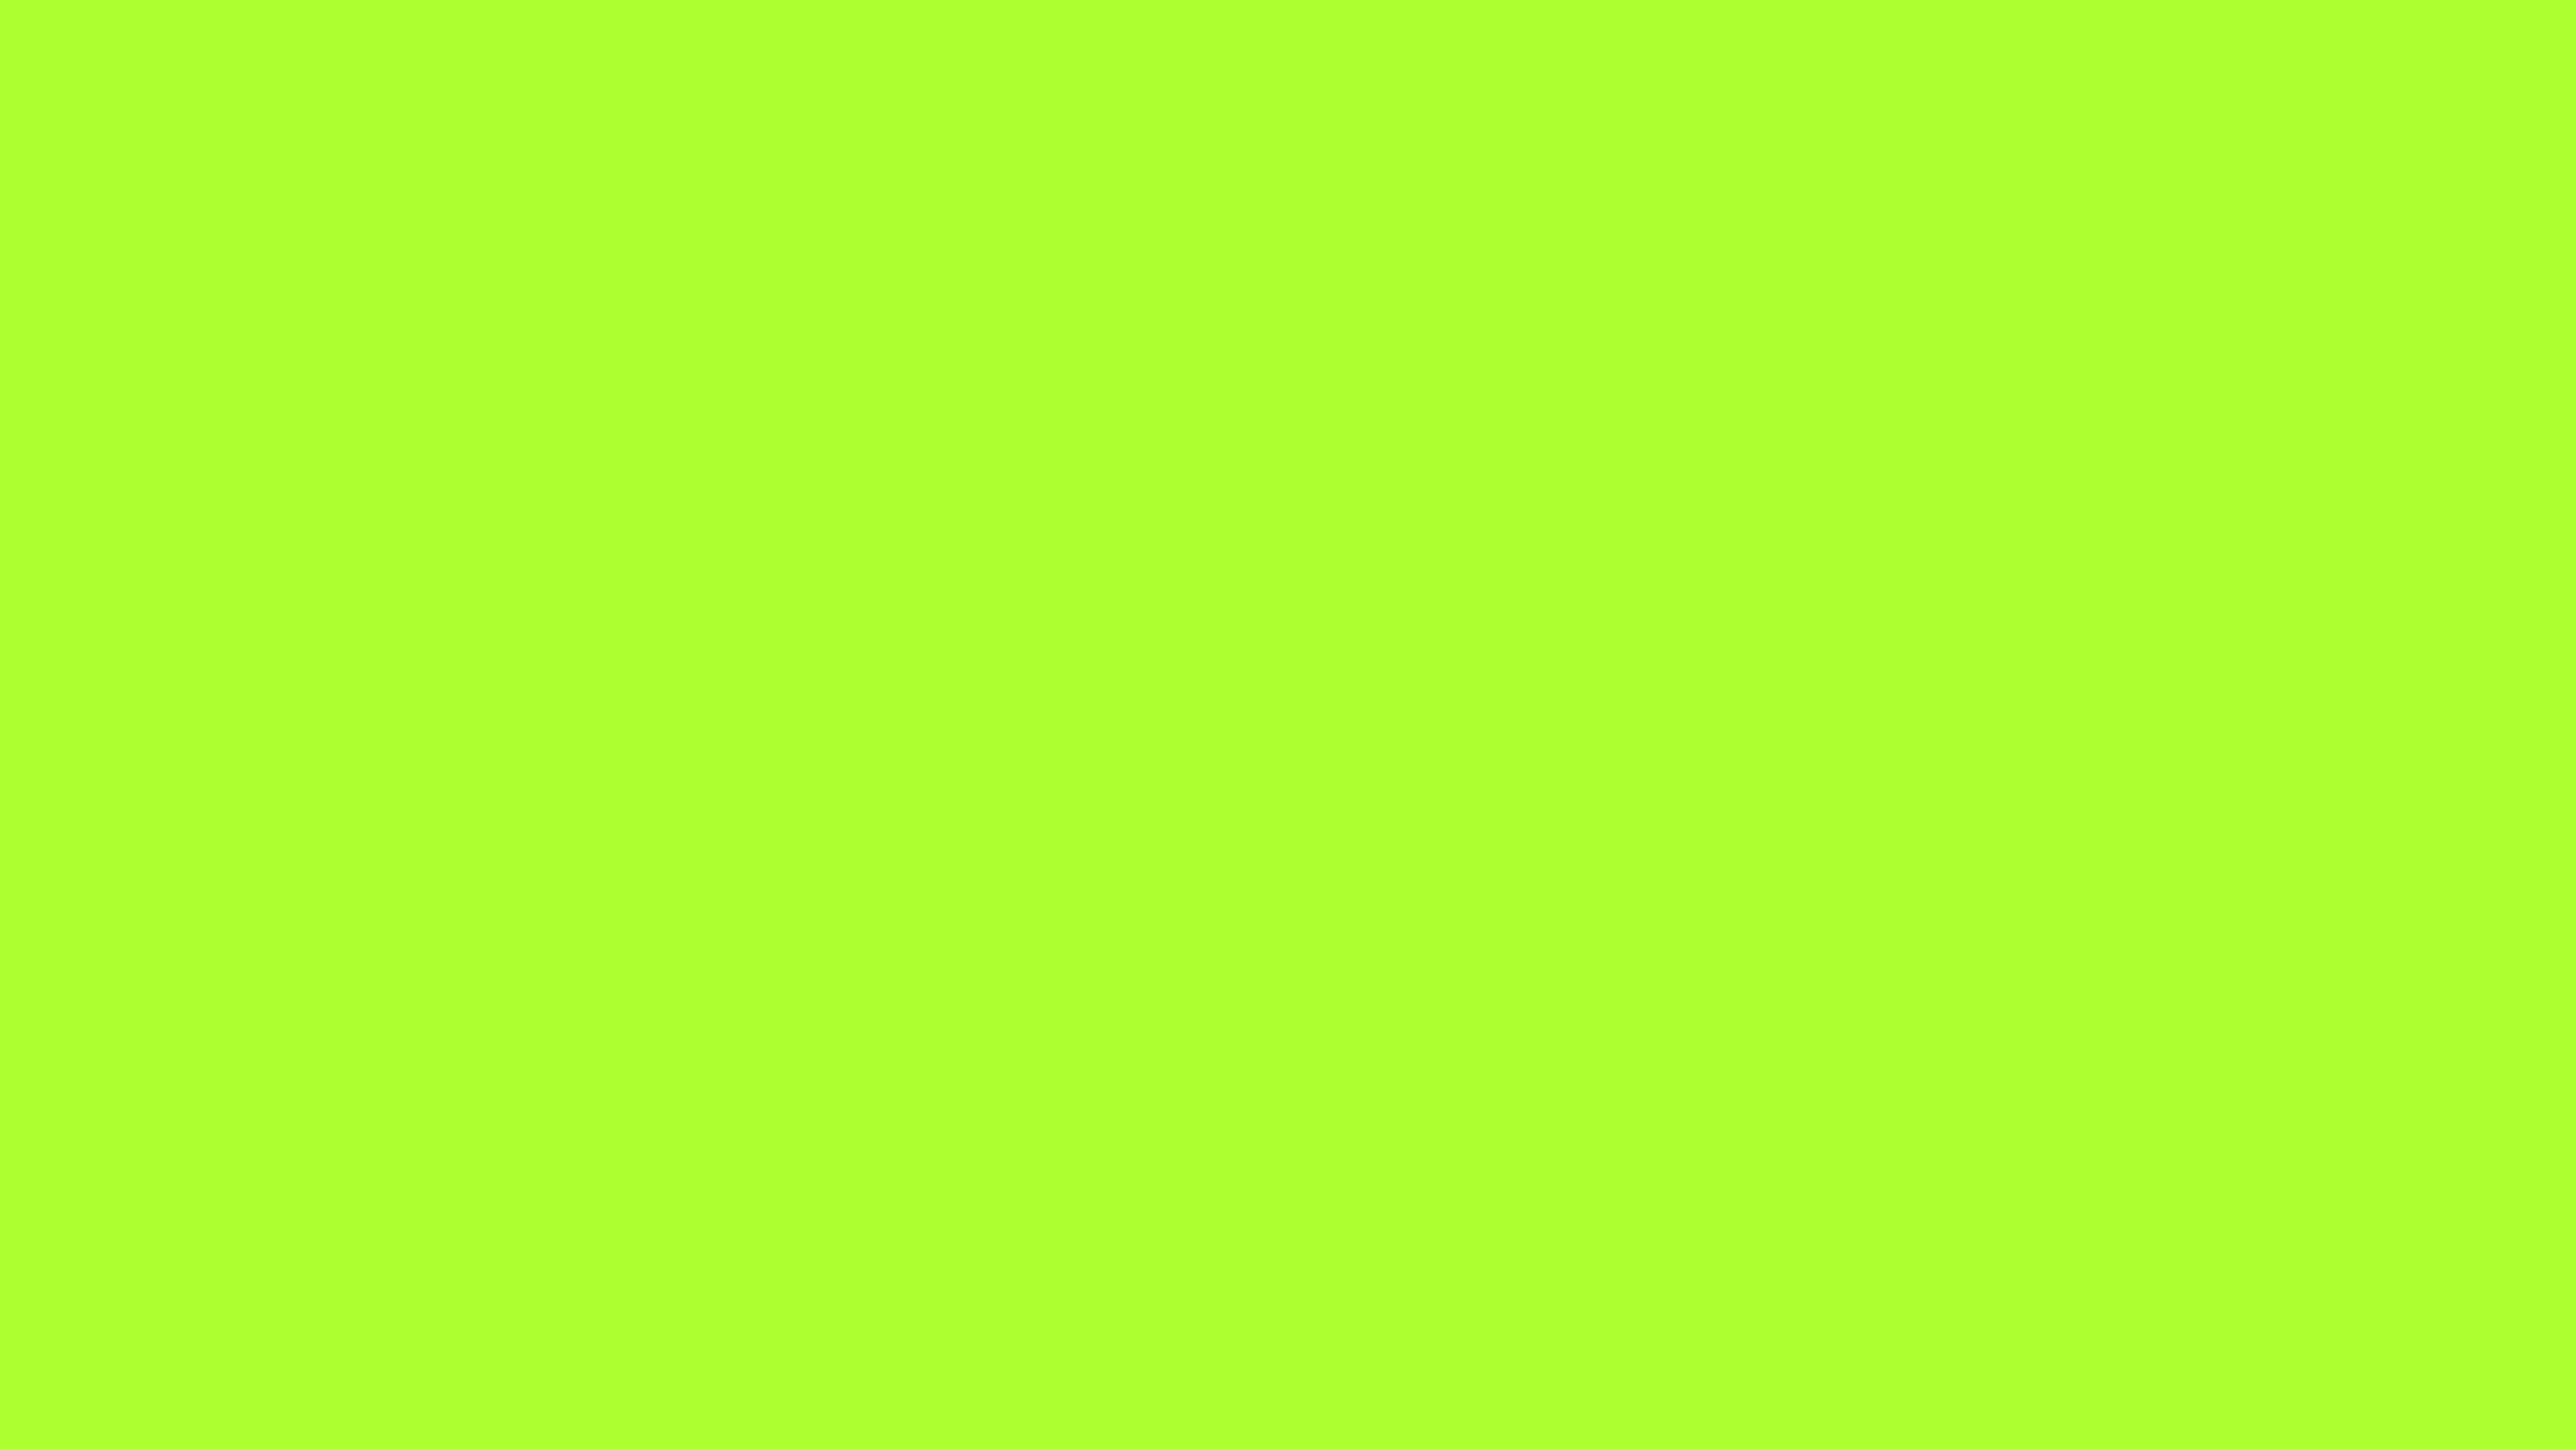 3840x2160 Green-yellow Solid Color Background